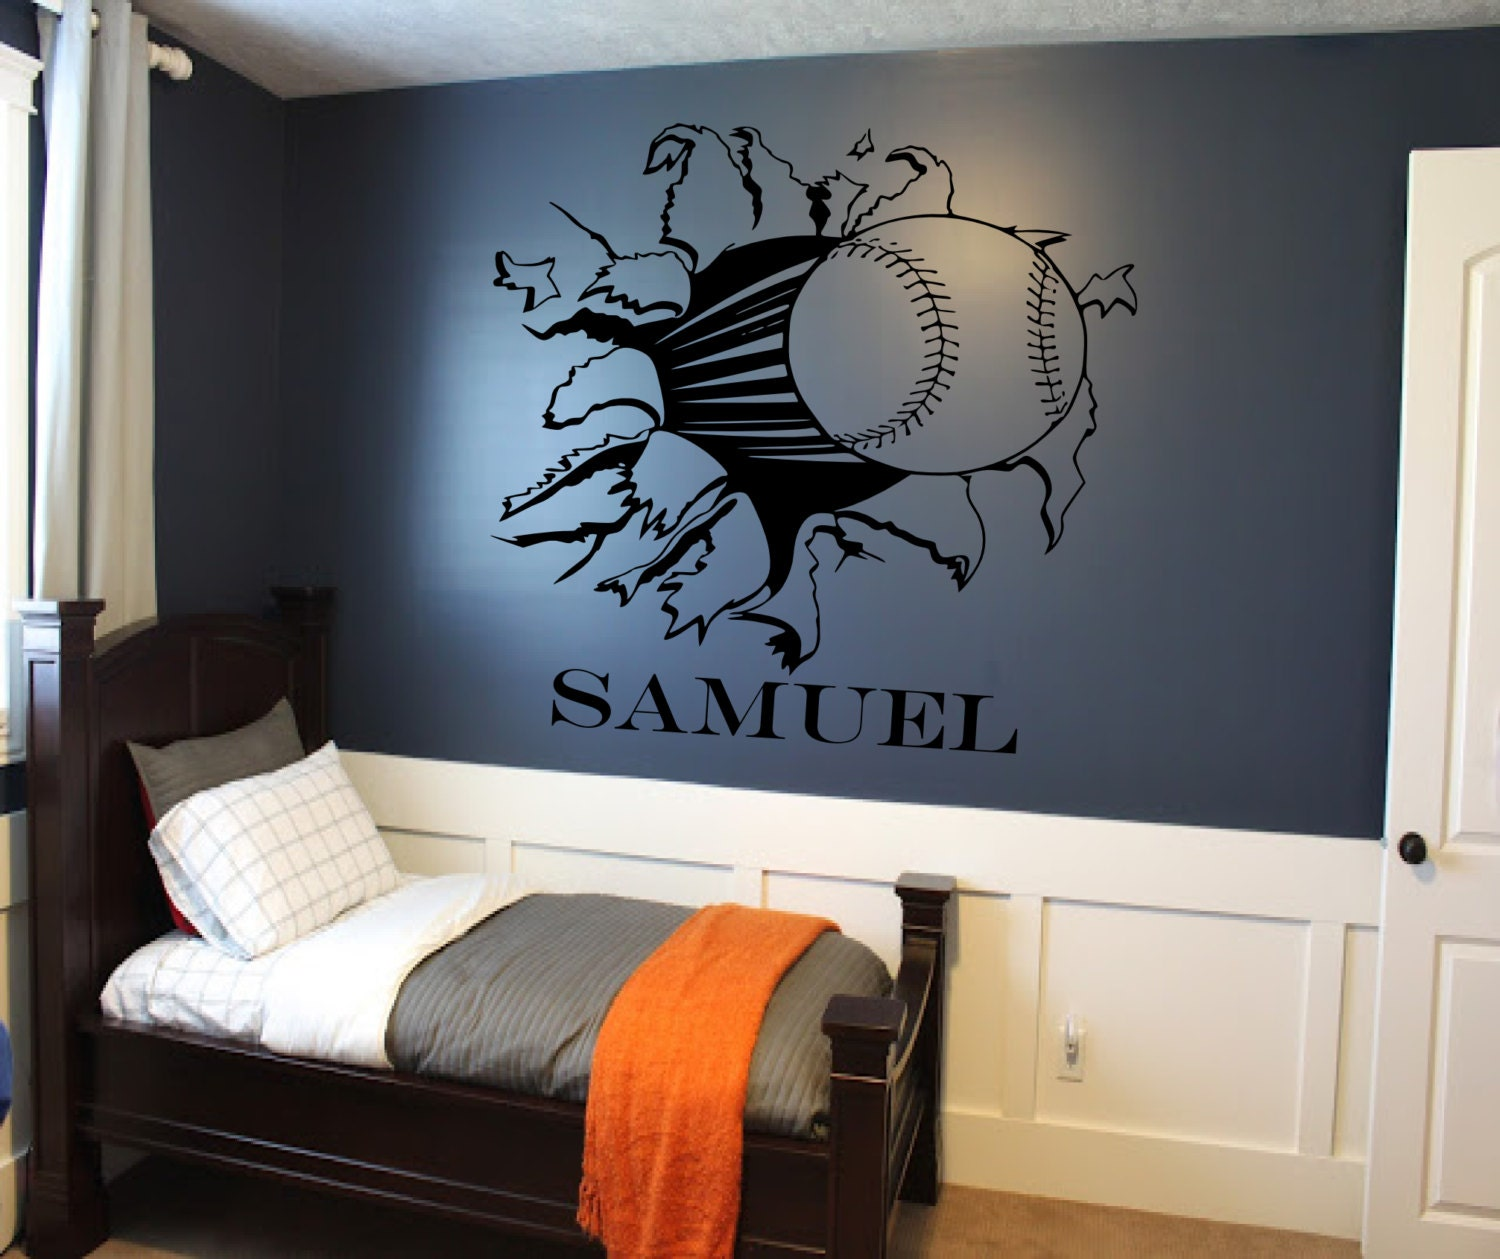 Boys soccer bedroom ideas - Boys Room Decorating Ideas Football Home Inspirations Soccer Custom Baseball Or Softball Bursting Through Wallsportsvinyl